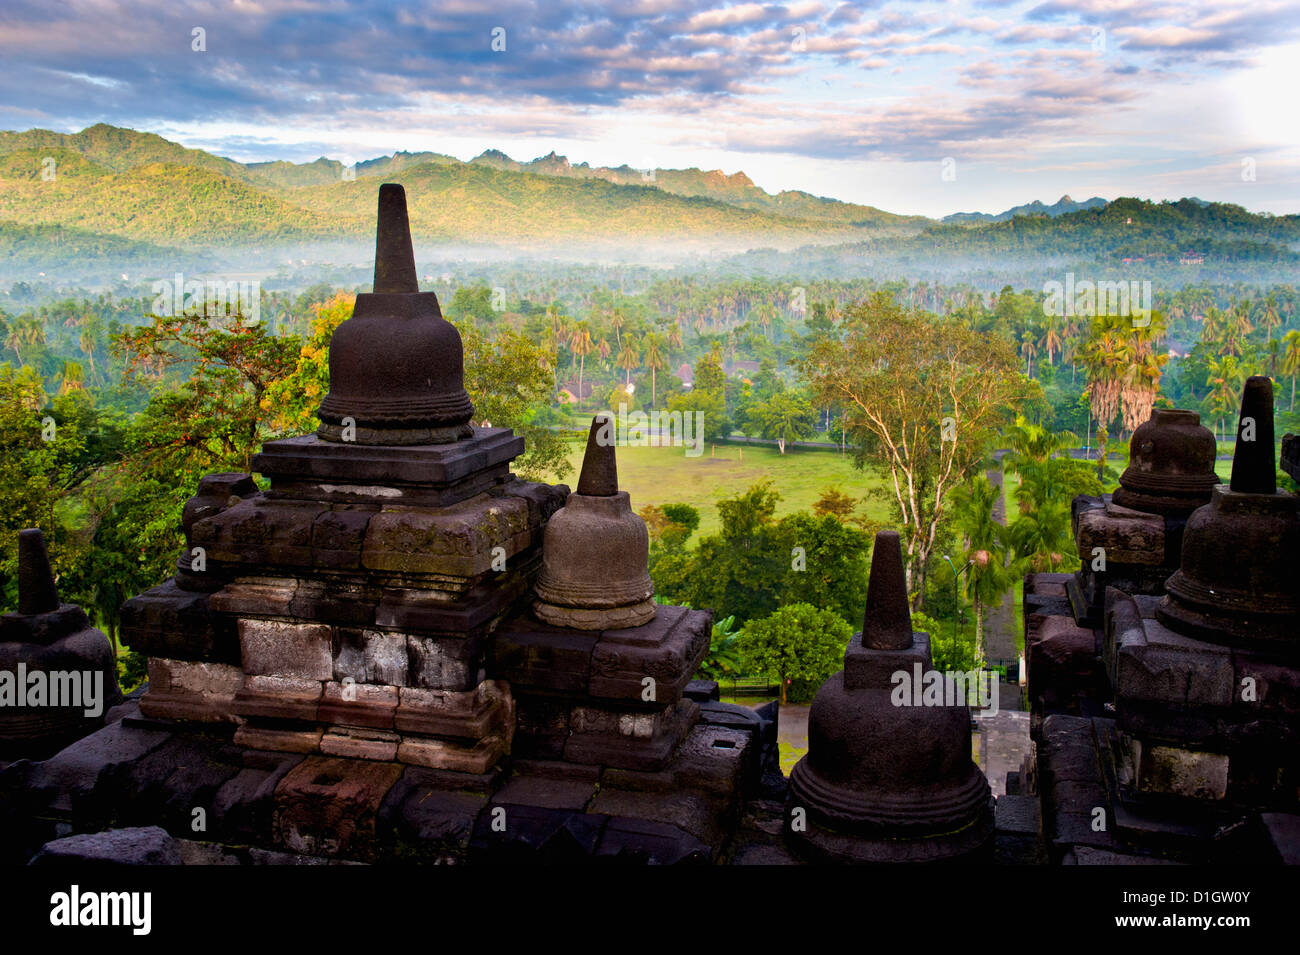 Stone Stupa at Borobodur on a misty morning at sunrise, Borobudur (Borobodur), Yogyakarta, Java, Indonesia, Southeast - Stock Image